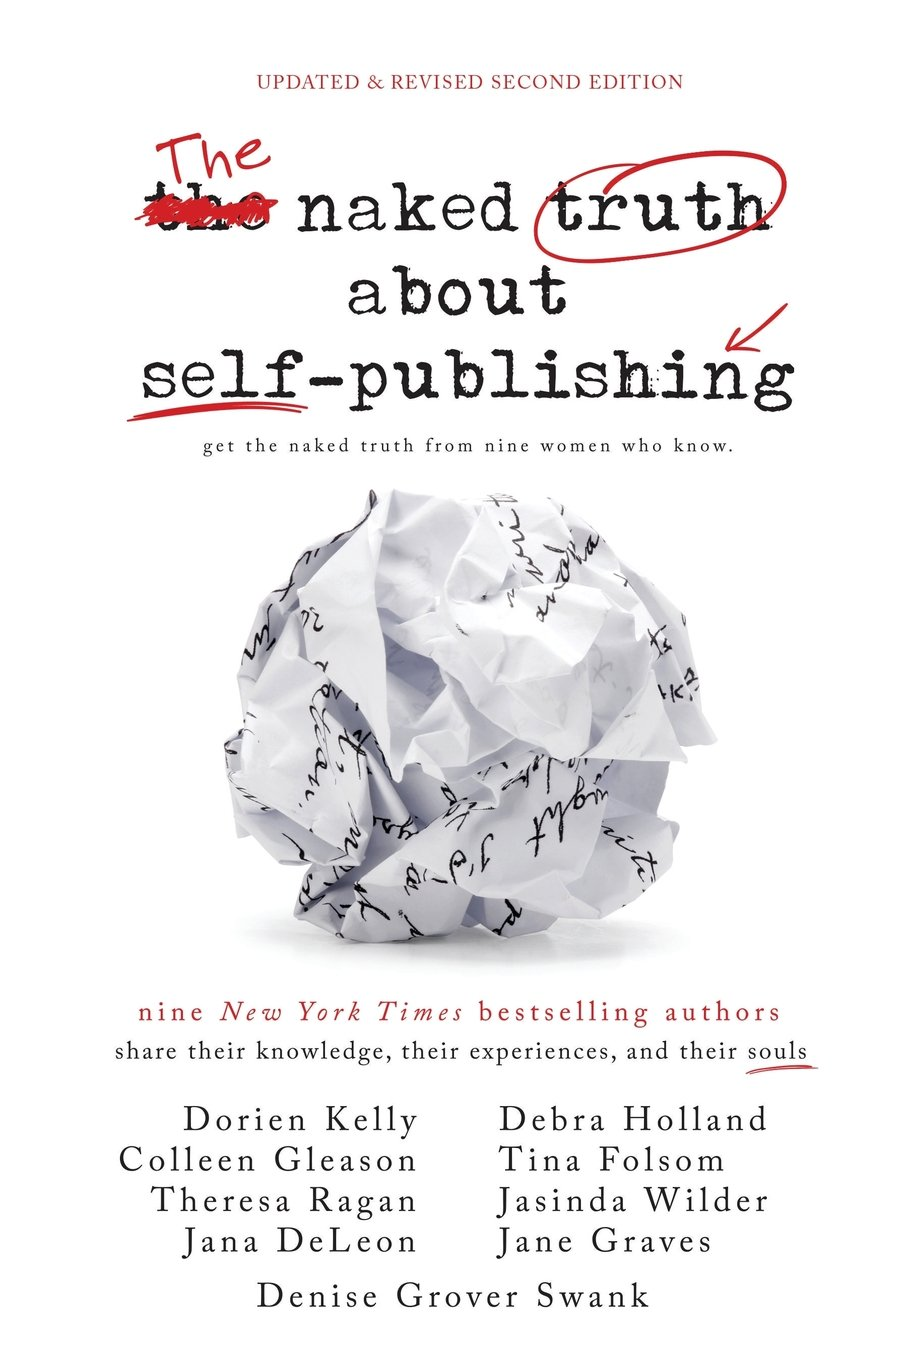 The Naked Truth About Selfpublishing: Updated & Revised Second Edition:  Jana Deleon, Tina Folsom, Colleen Gleason, Jane Graves, Debra Holland,  Dorien Kelly